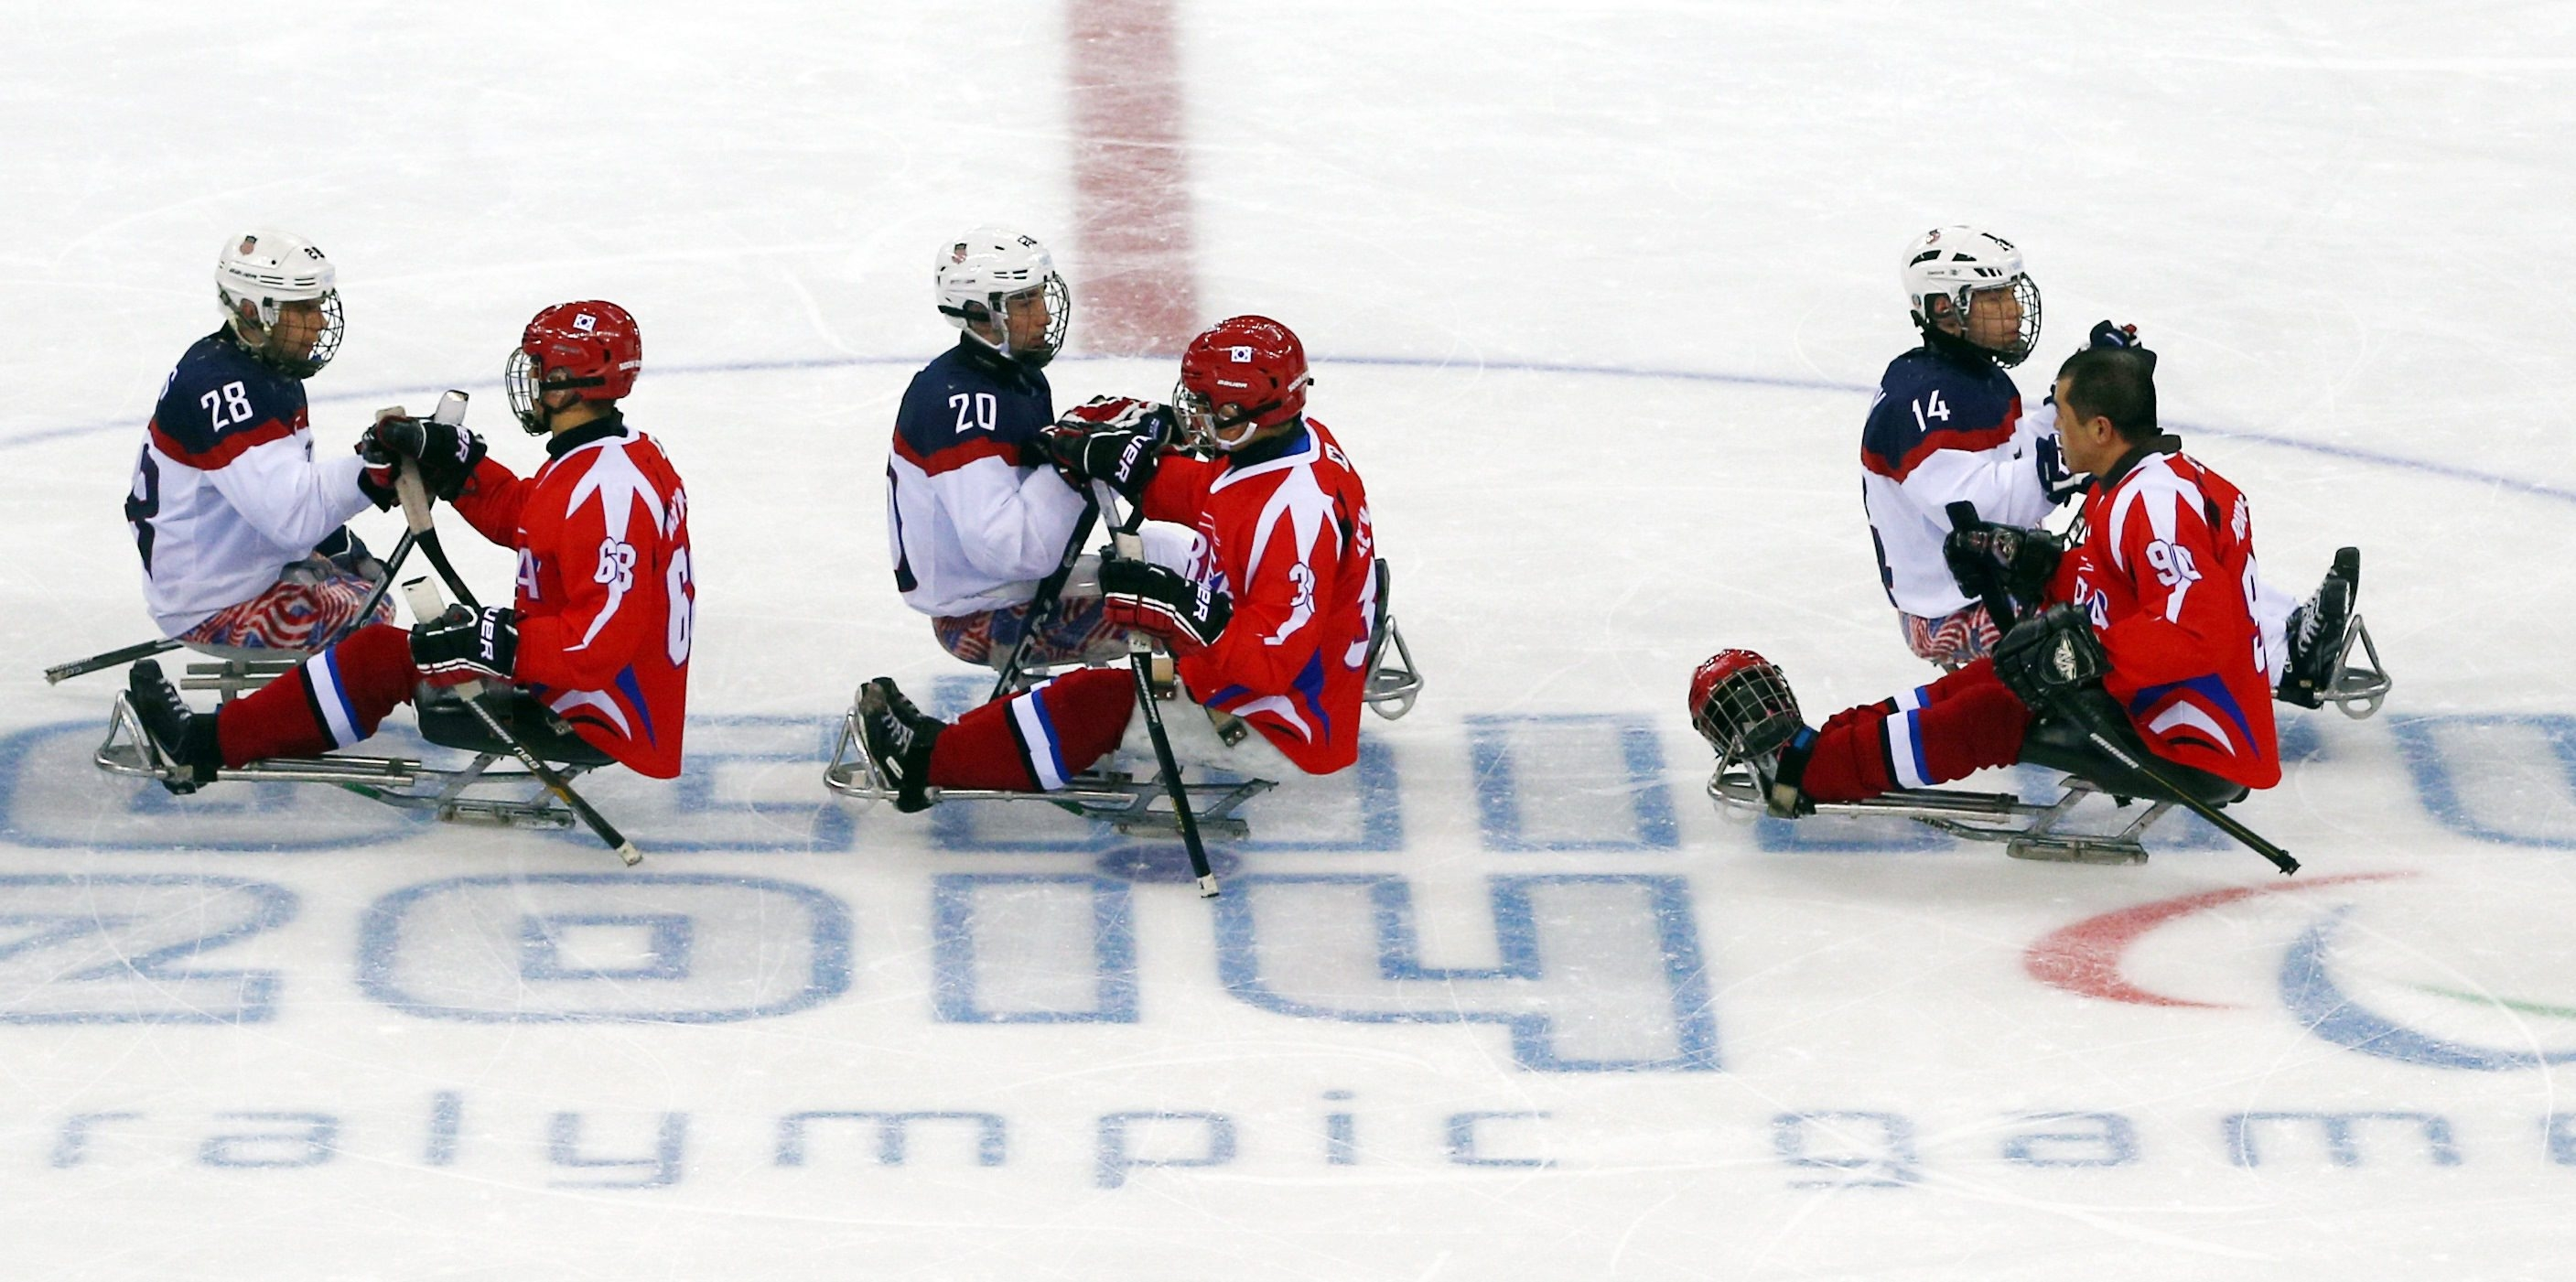 Players from the South Korean and U.S. sled hockey teams shake hands after Sunday's Paralympics match in Sochi, Russia. The United States won, 3-0, and Lancaster's Adam Page – No. 20, at center – scored two of those goals.